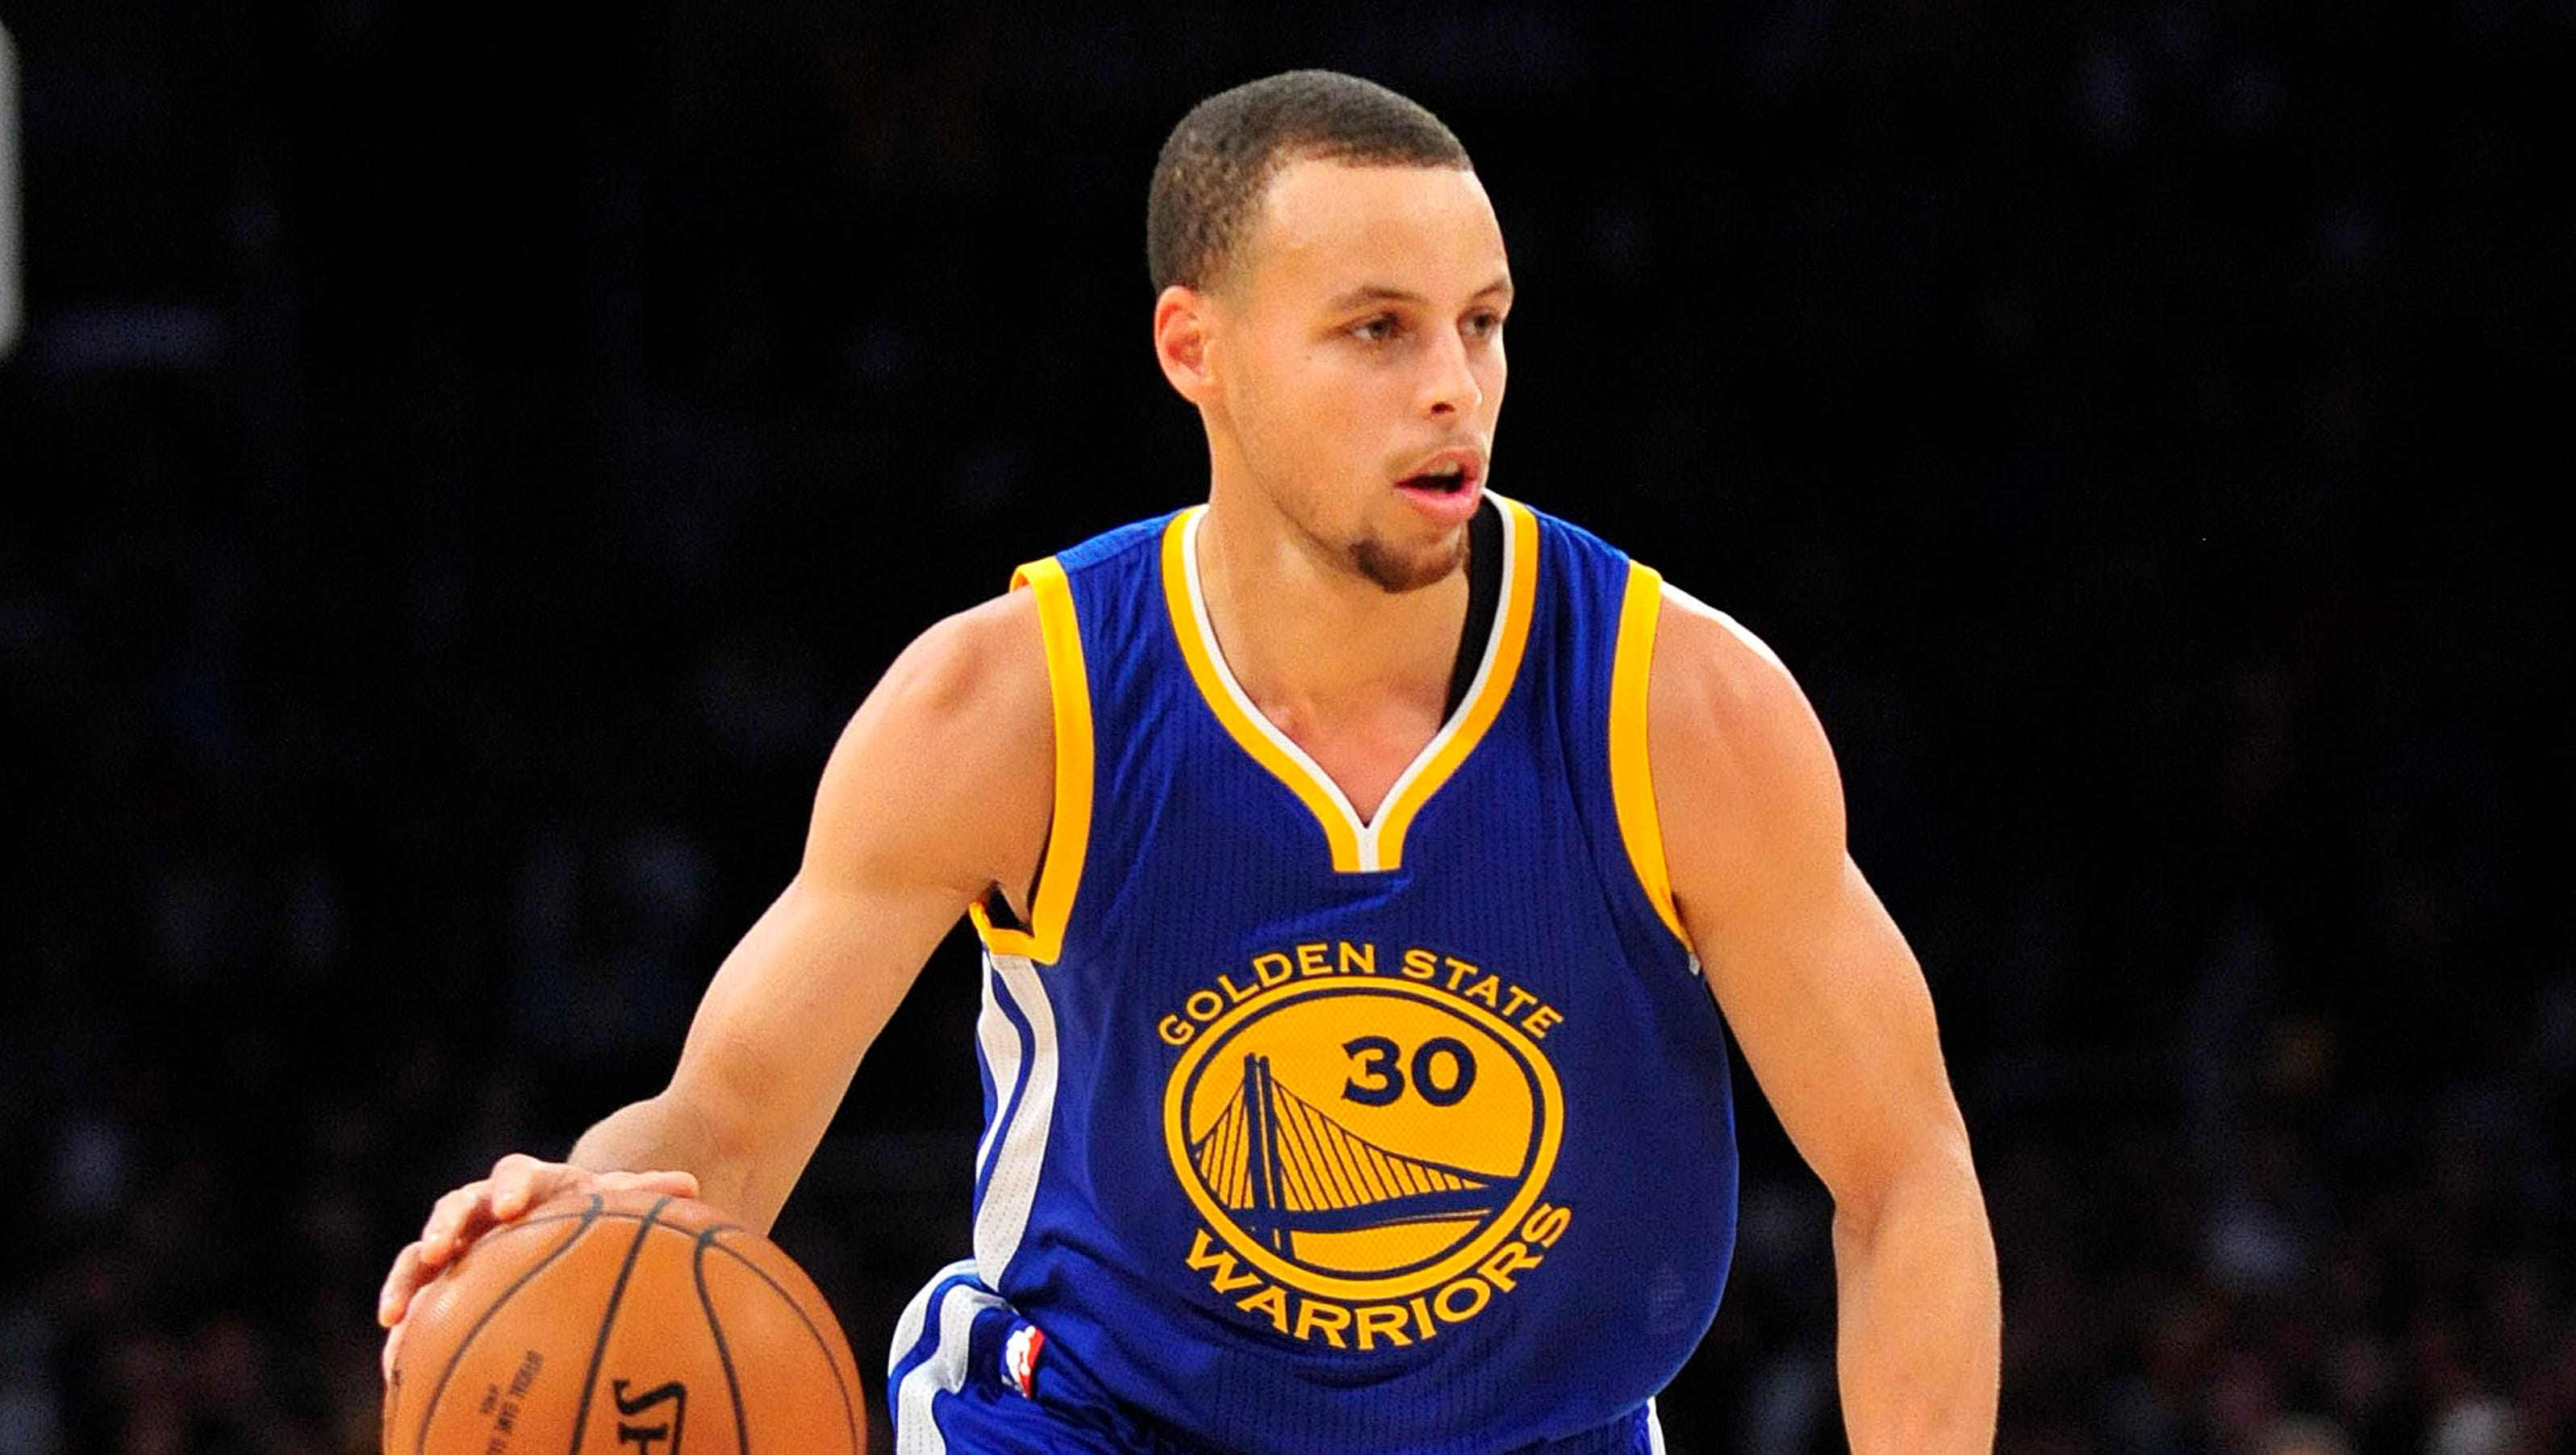 LeBron James, Steph Curry lead NBA All-Star voting